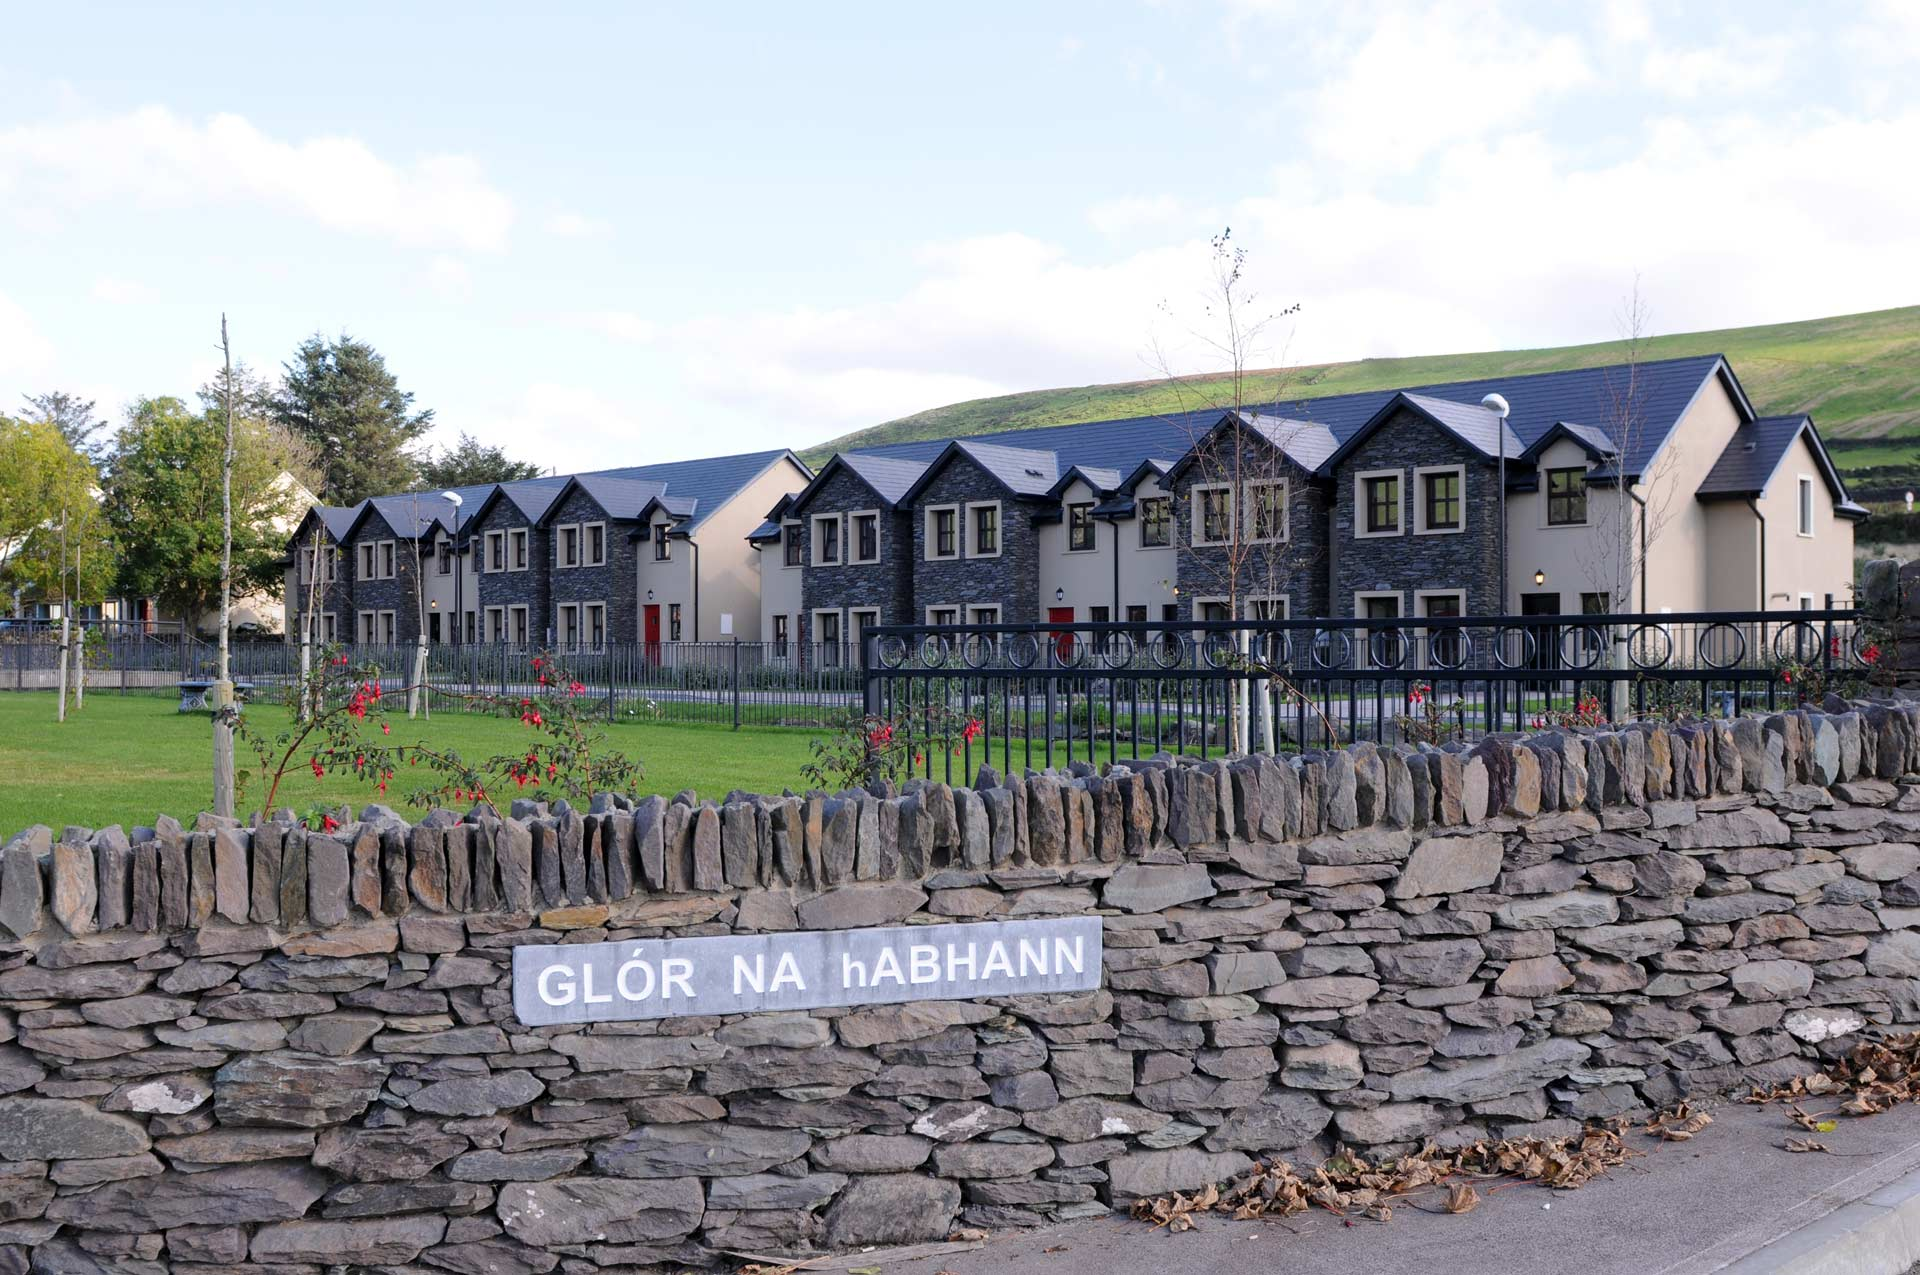 View of Glór na hAbhann luxury self catering holiday homes from the road in Dingle, Ireland